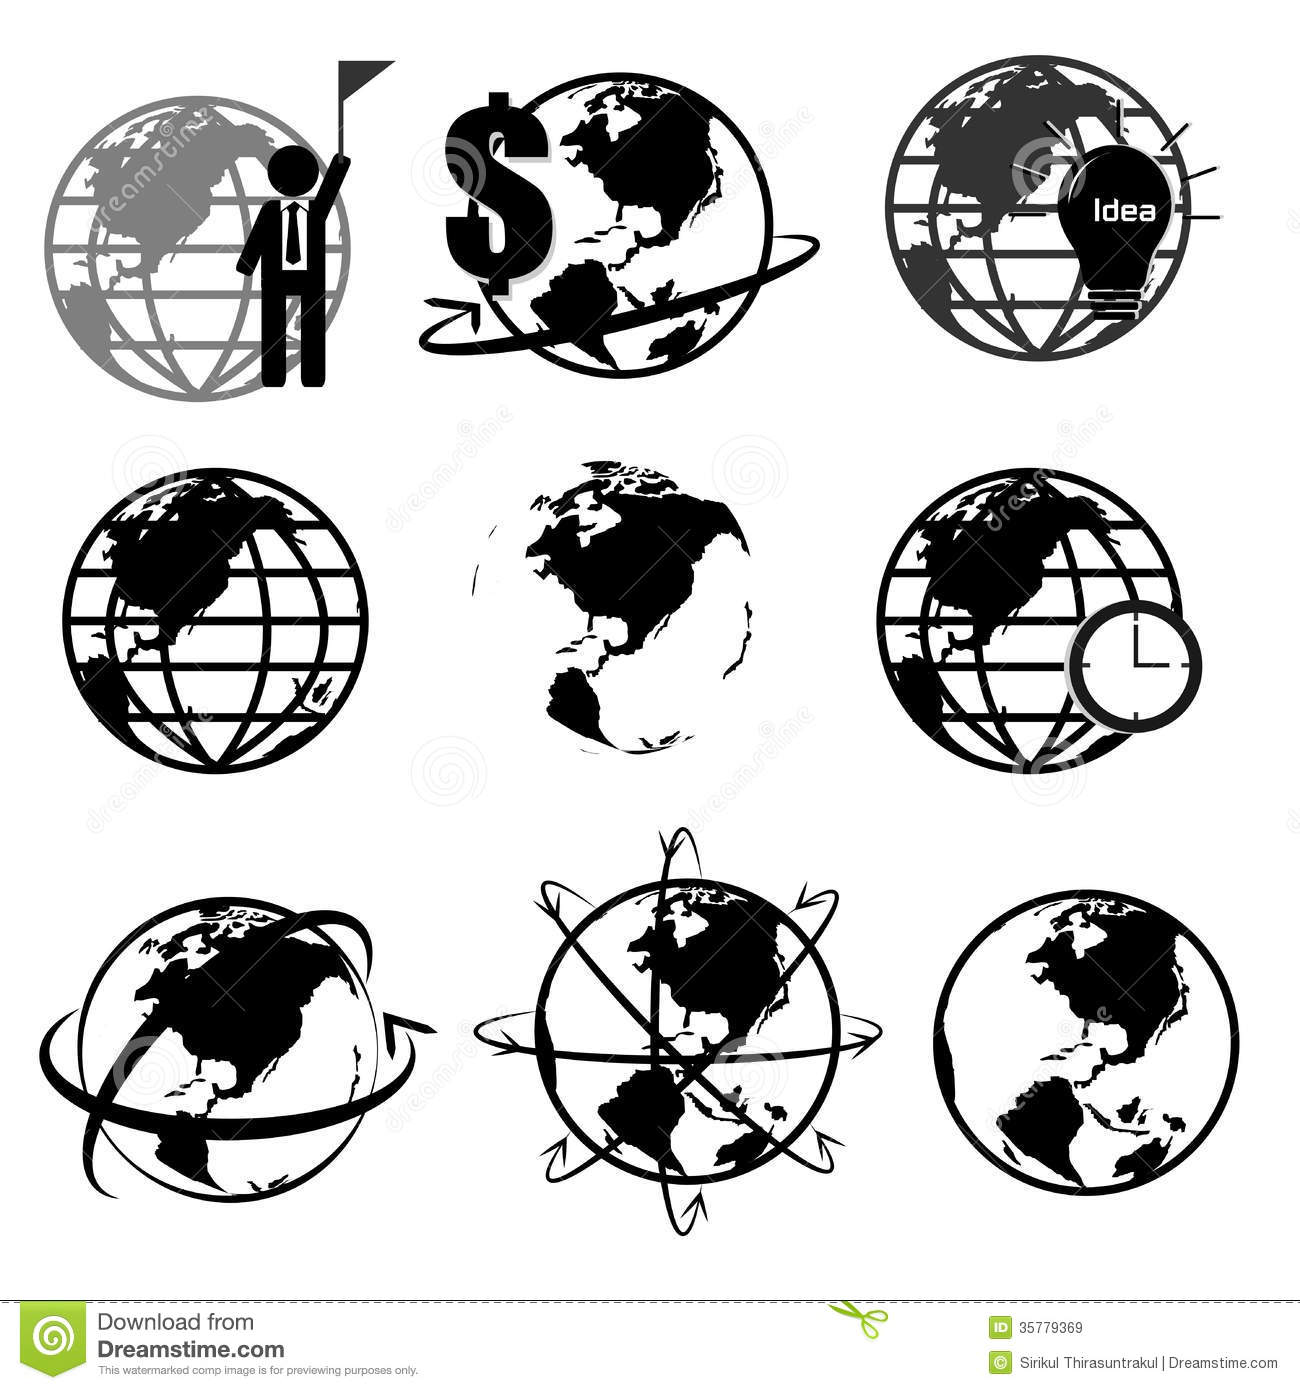 Vector set of 3d world map or globe series 2 stock illustration vector set of 3d world map or globe series 2 gumiabroncs Image collections